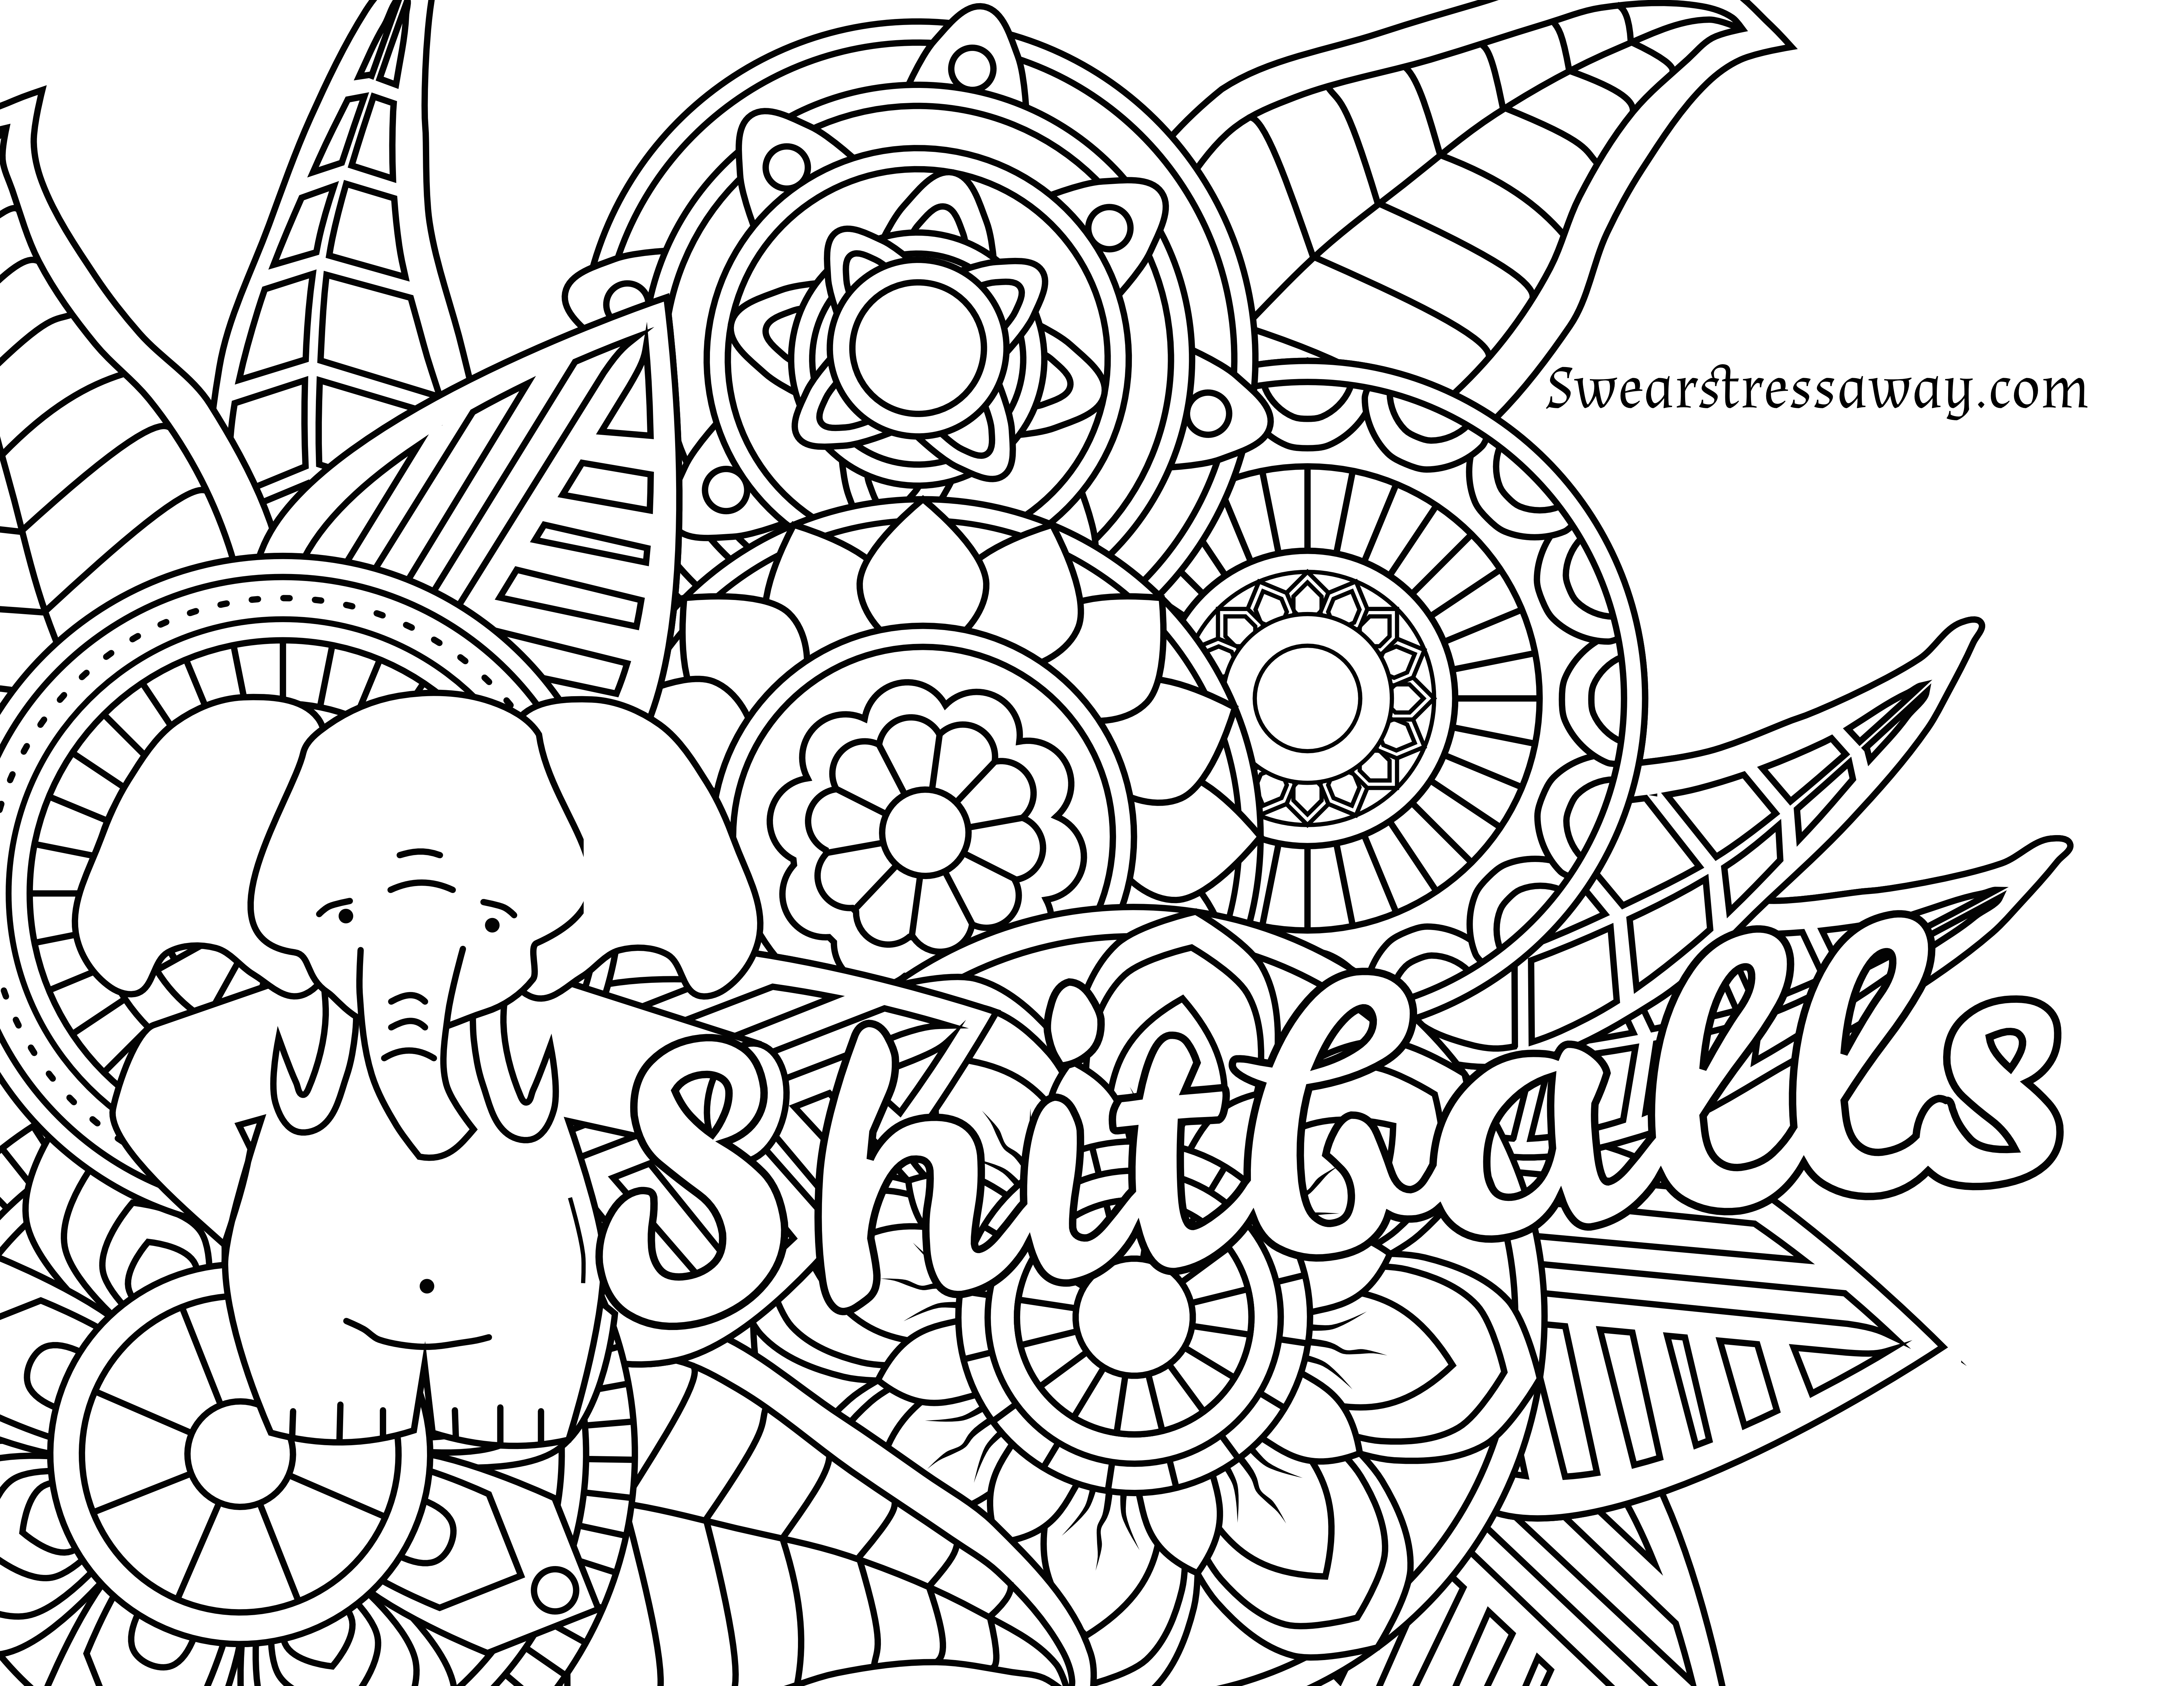 Coloring Pages : Free Printable Coloring Pages Adults Quotes For - Free Printable Coloring Book Pages For Adults